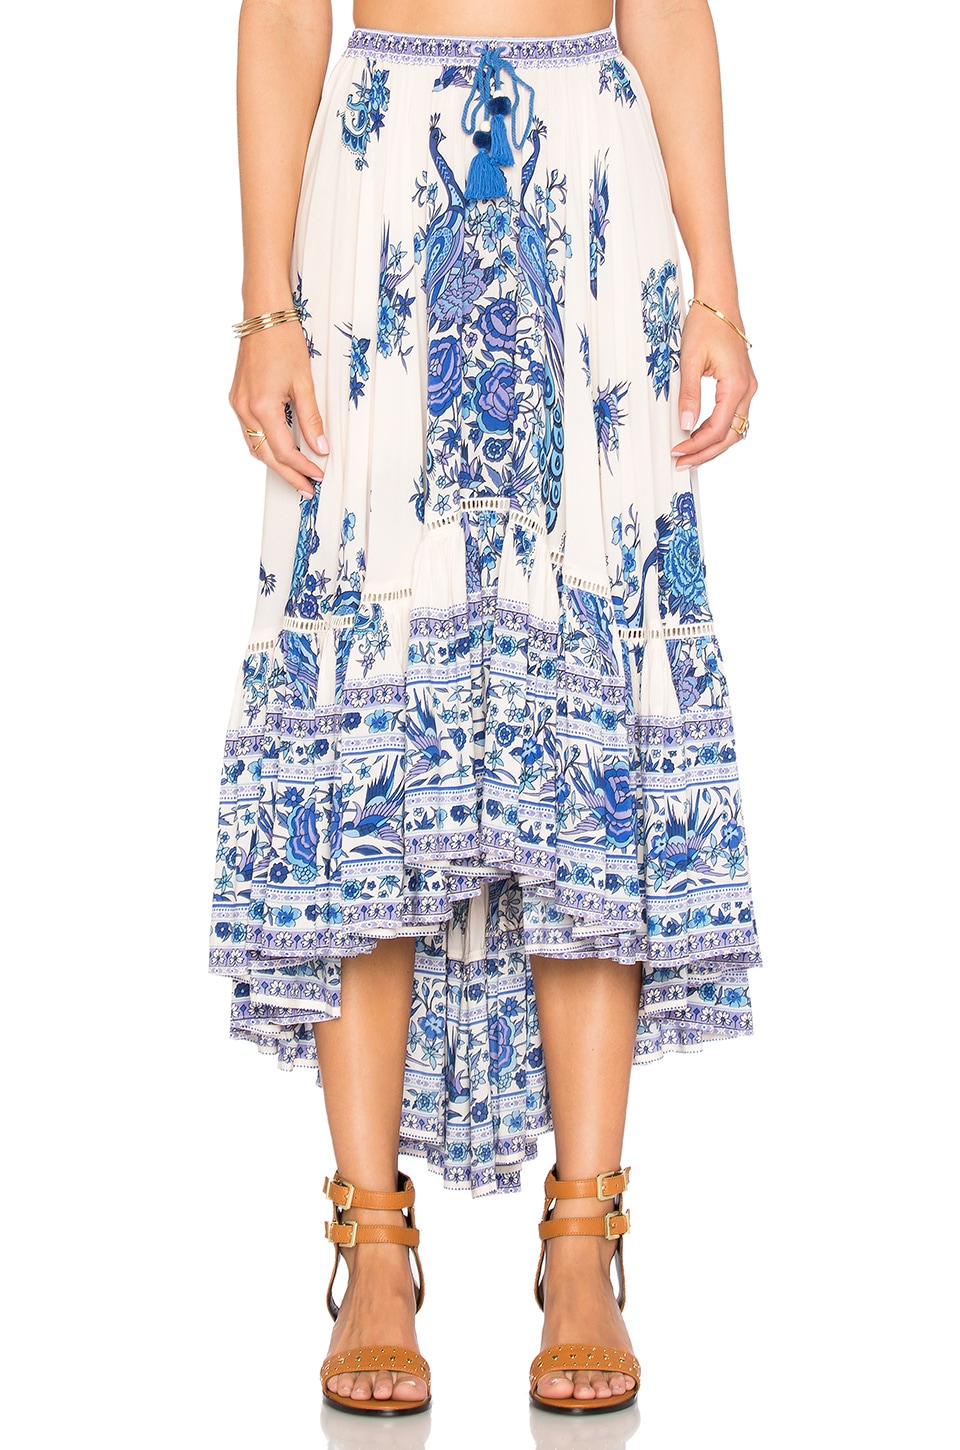 Spell & The Gypsy Collective Hotel Paradiso Castaway Skirt in Bluebird